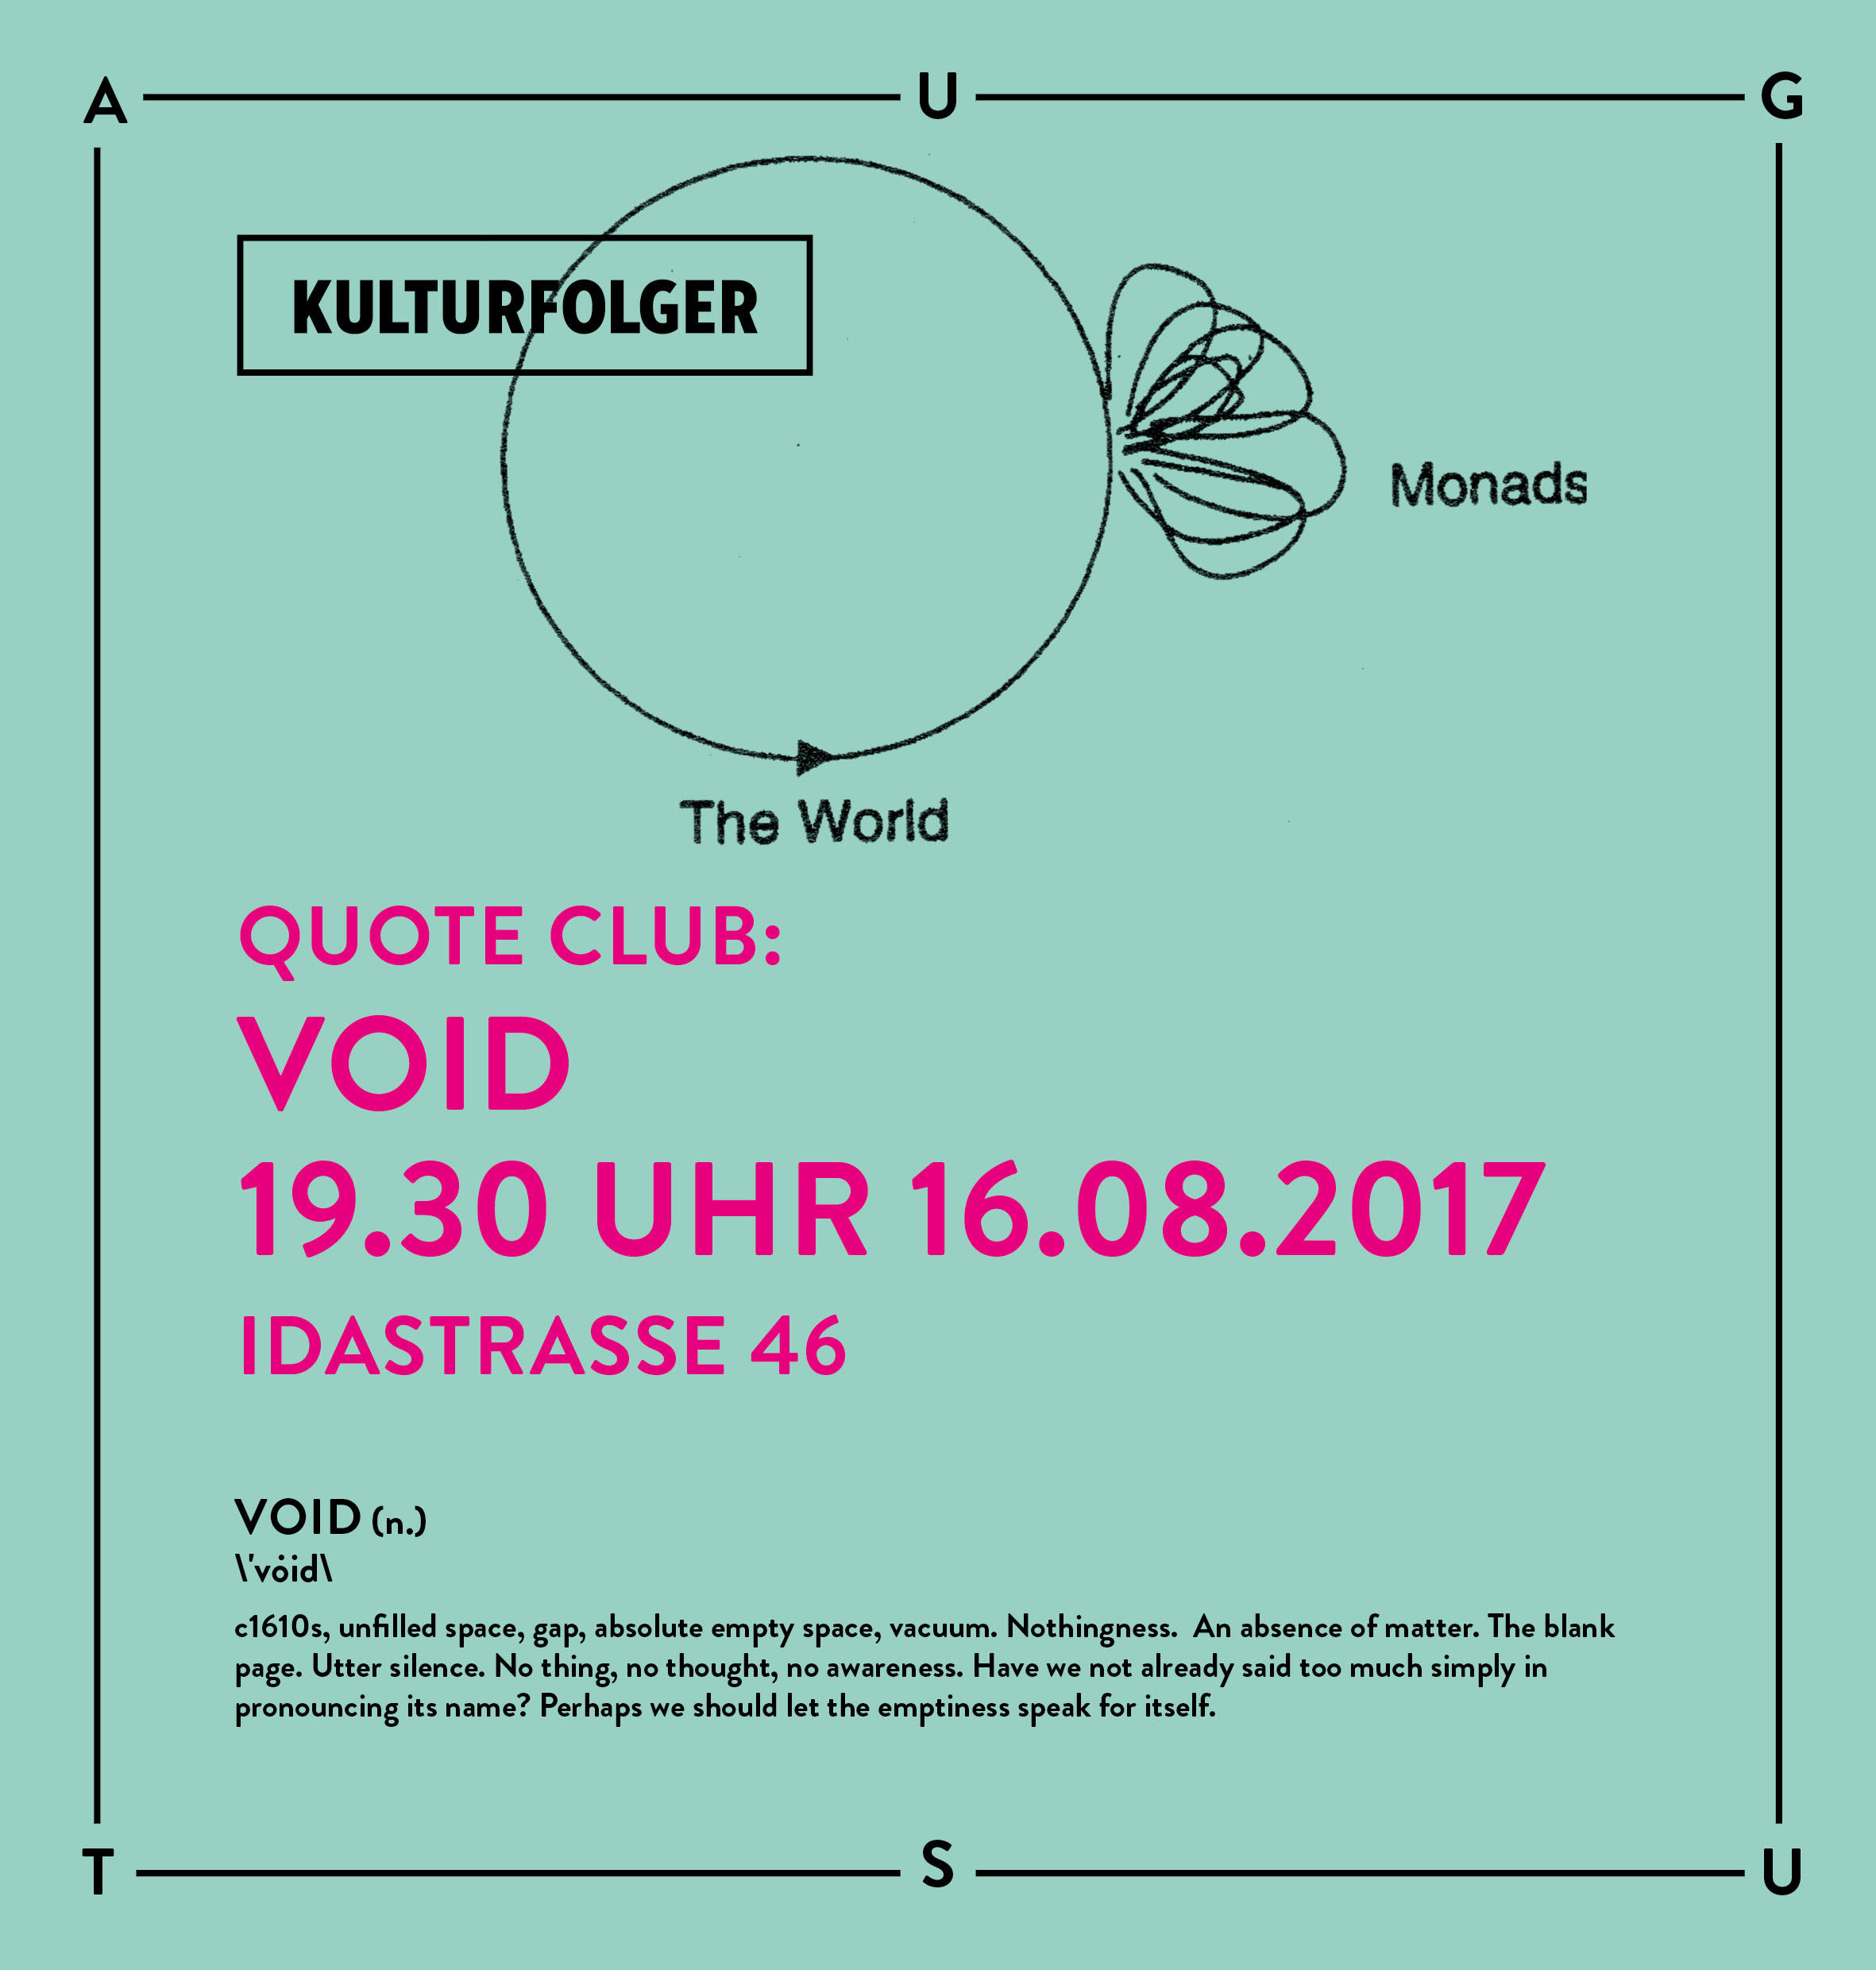 Join us for the sixth session of Quote Club where we will delve into different readings of VOID. We will read excerpts from texts by Karen Barad, Michel Serres, Georges Perec and Gilles Deleuze. Excerpts from selected texts will be provided in the space and can be found here:  www.kulturfolger.ch/read-me/